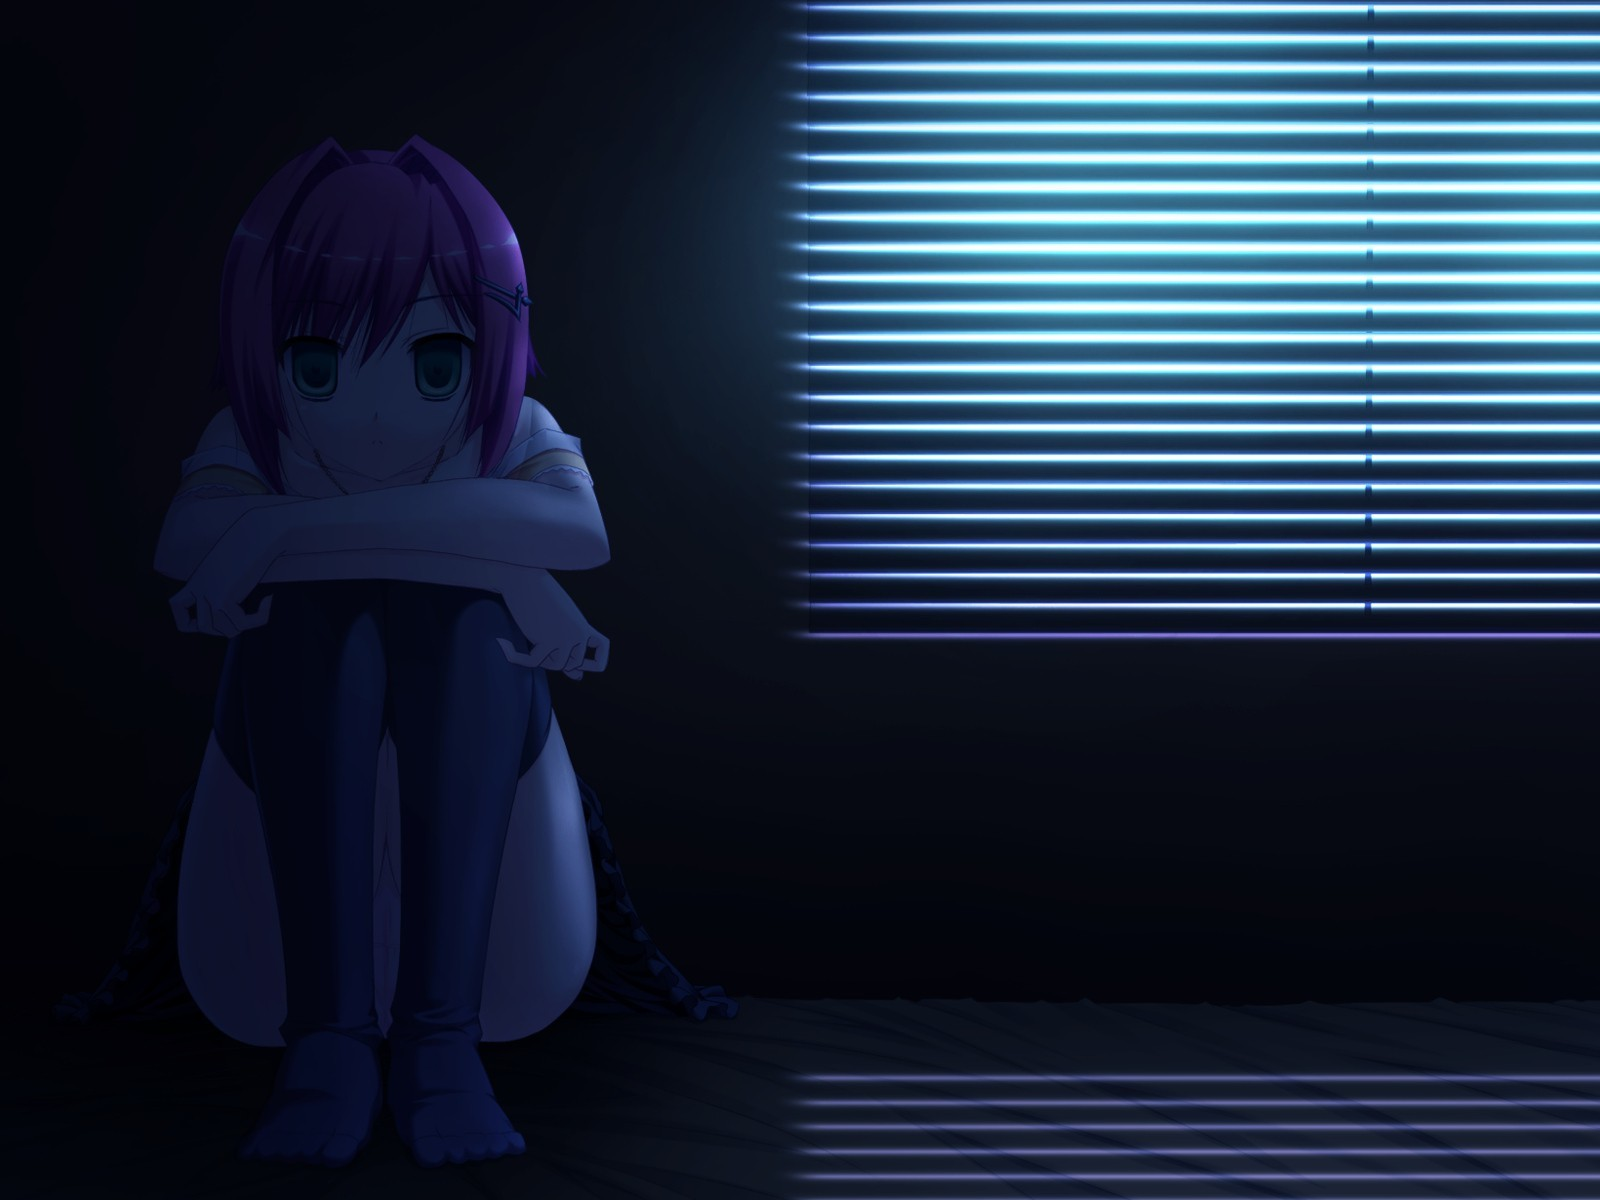 dark lonely Anime anime HD Wallpaper